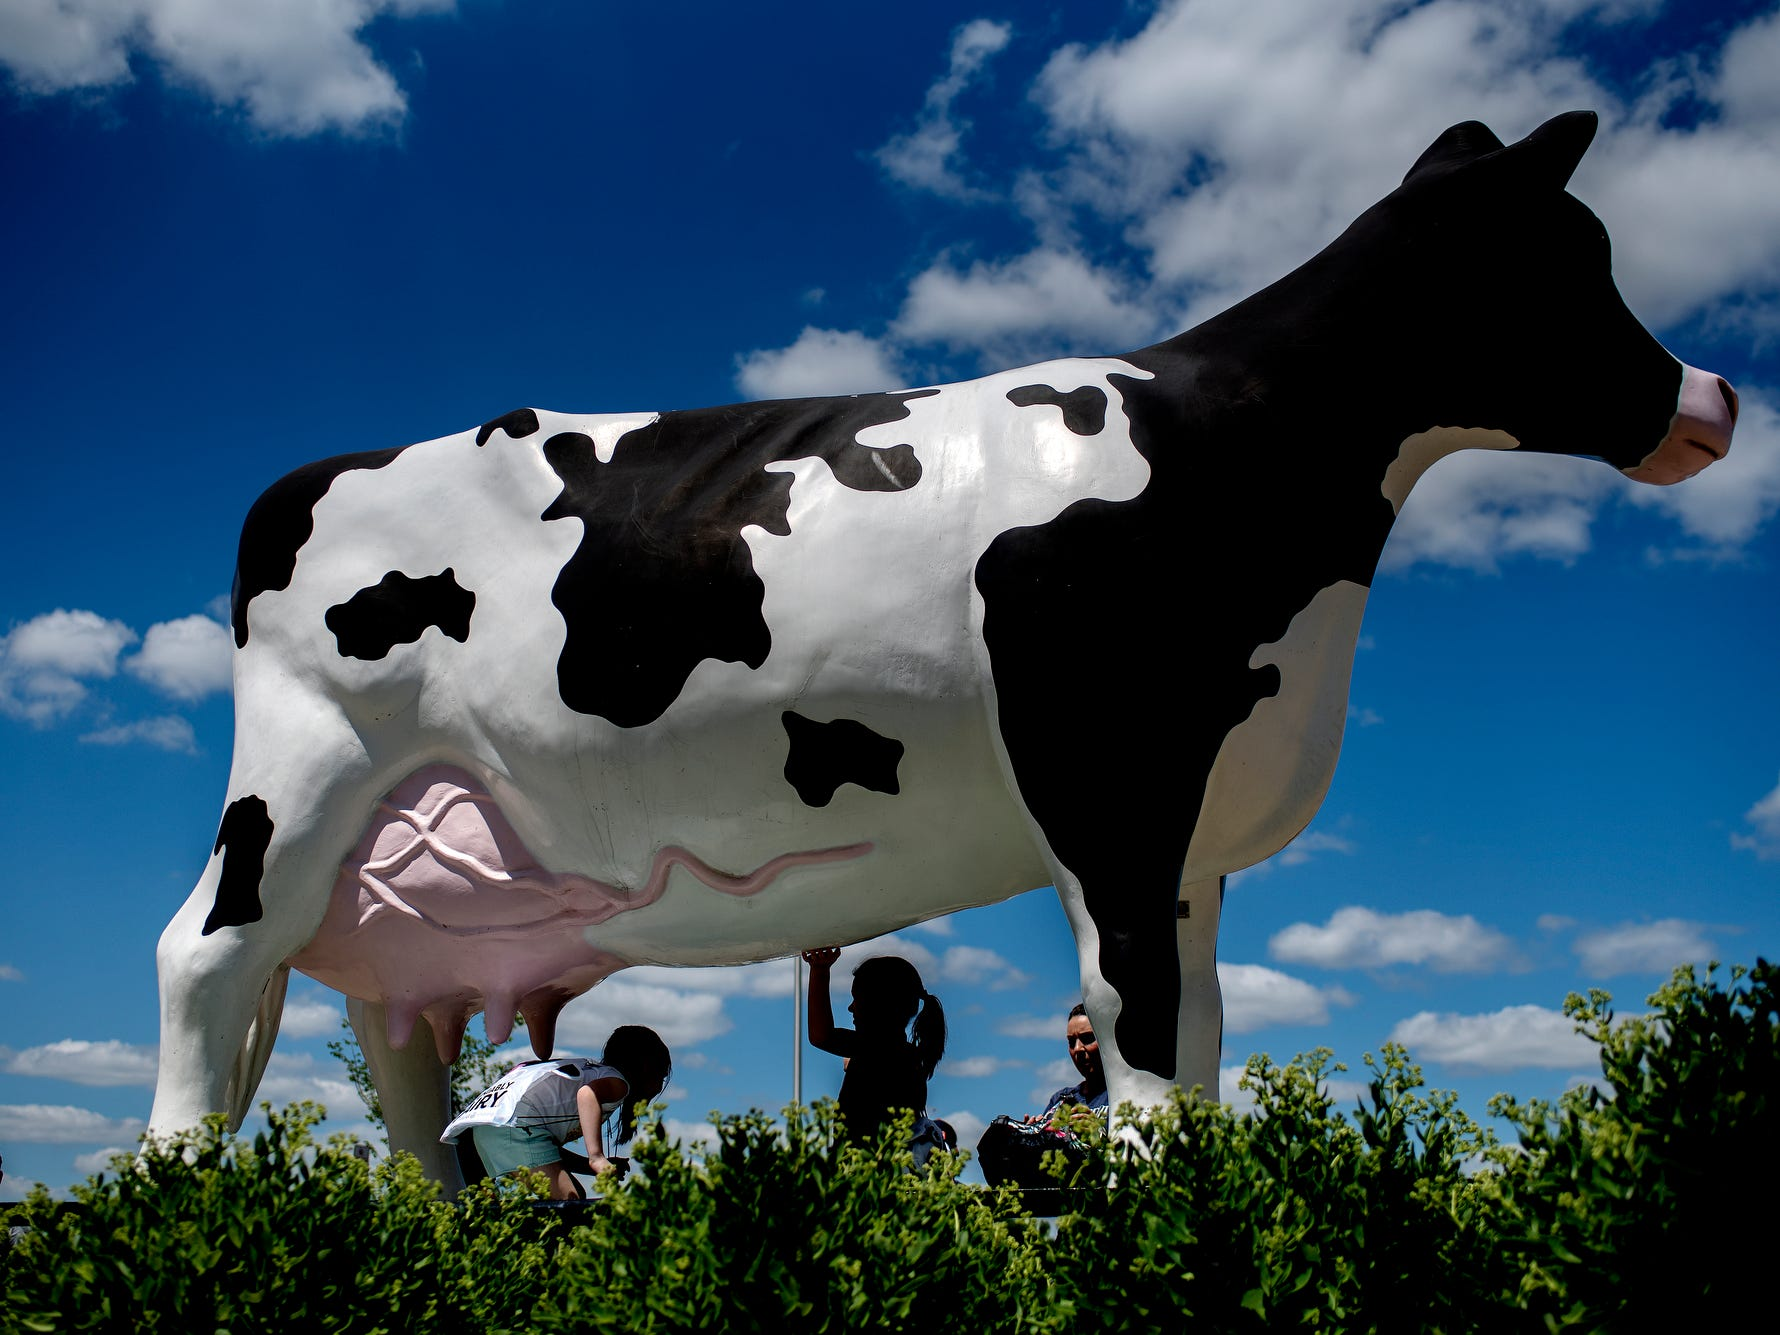 Children and adults gather around a large dairy cow statue outside during the Great Dairy Adventure on Wednesday, July 18, 2018, at the Michigan State University Pavilion for Agriculture and Livestock in East Lansing. The family-friendly event featured various dairy-themed activities including cow milking, calf petting, educational stations highlighting the process of dairy farming and more. The great dairy adventure was held as part of the Michigan Dairy Expo which runs July 16-20.